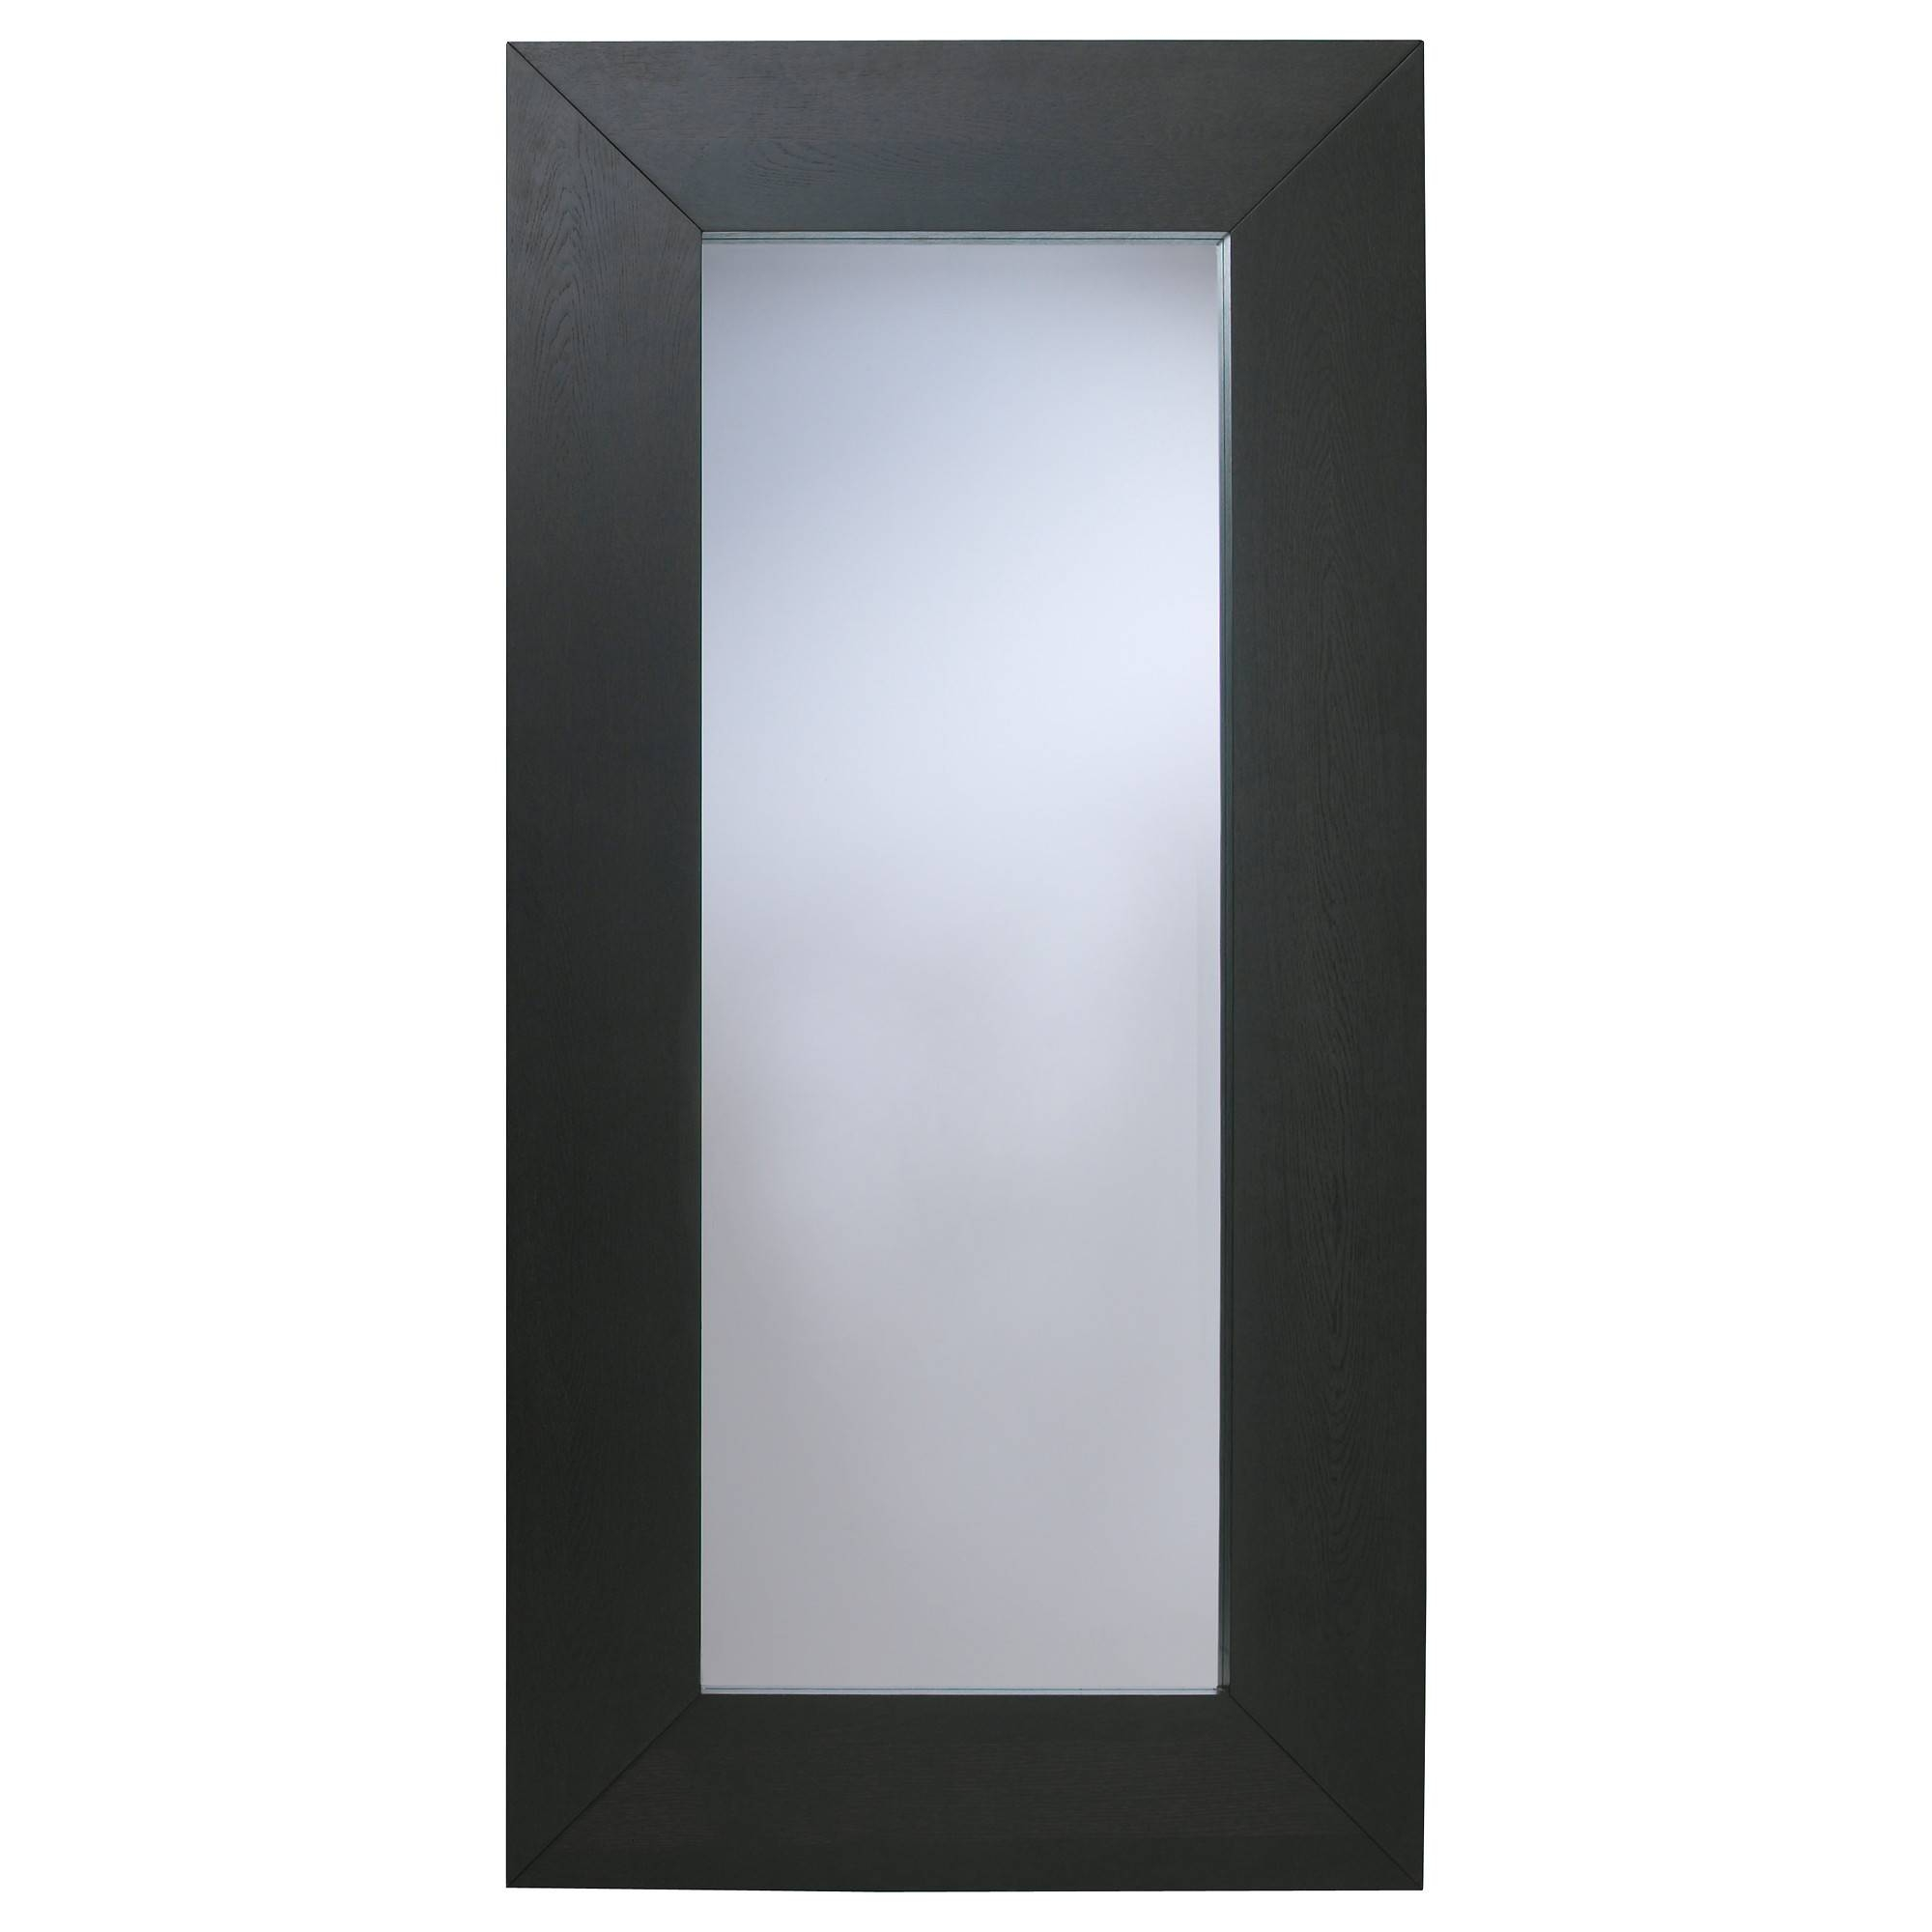 Mongstad Mirror – Ikea Inside Extra Large Black Mirrors (View 3 of 15)